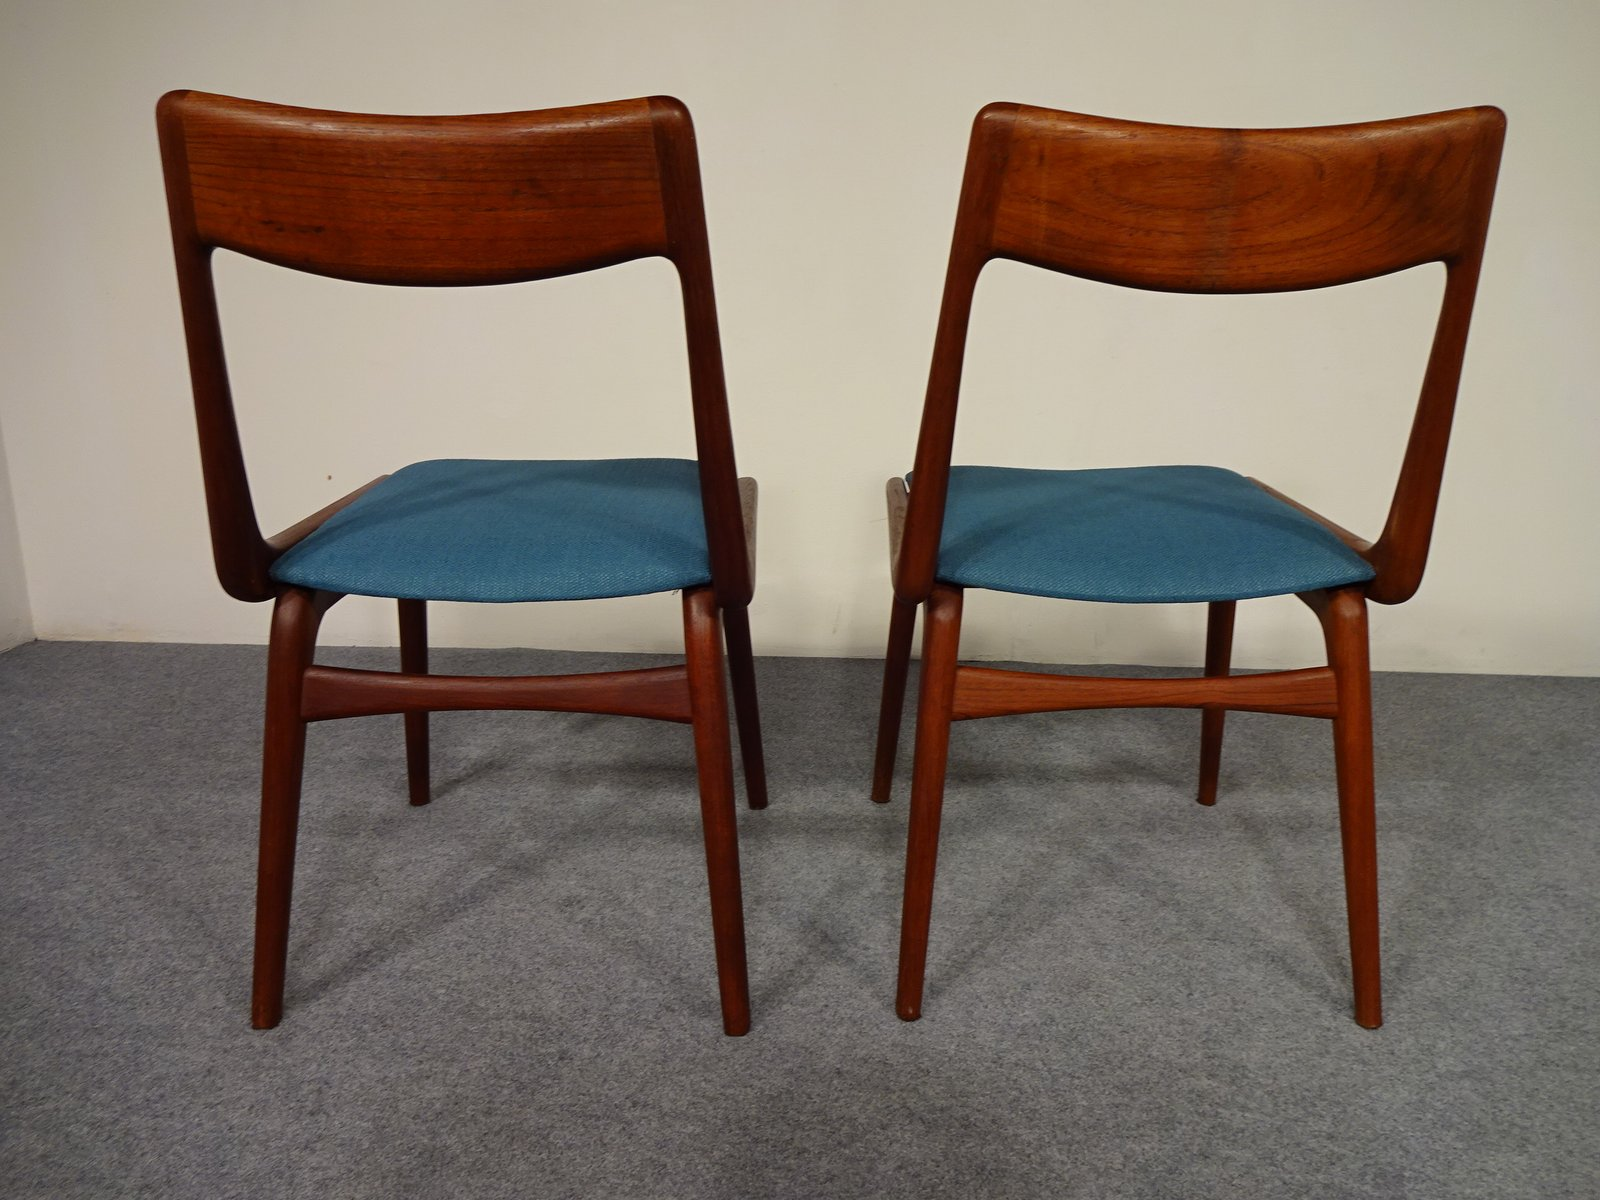 Vintage Boomerang Dining Chairs By Erik Christensen For Slagelse M Belv Rk S